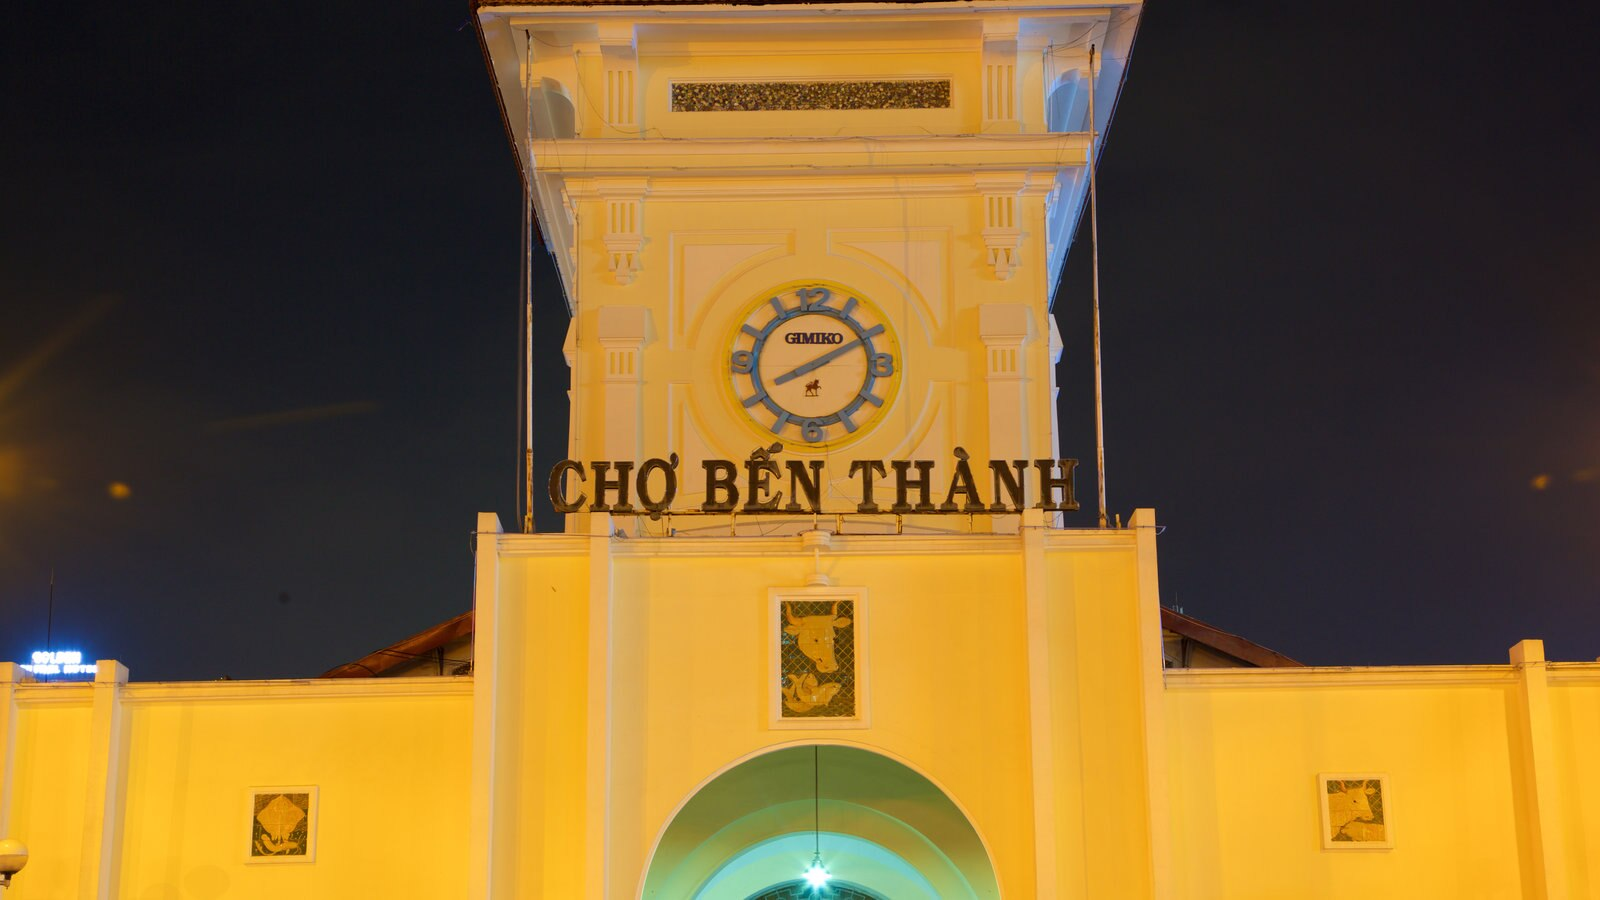 Ben Thanh Market which includes signage